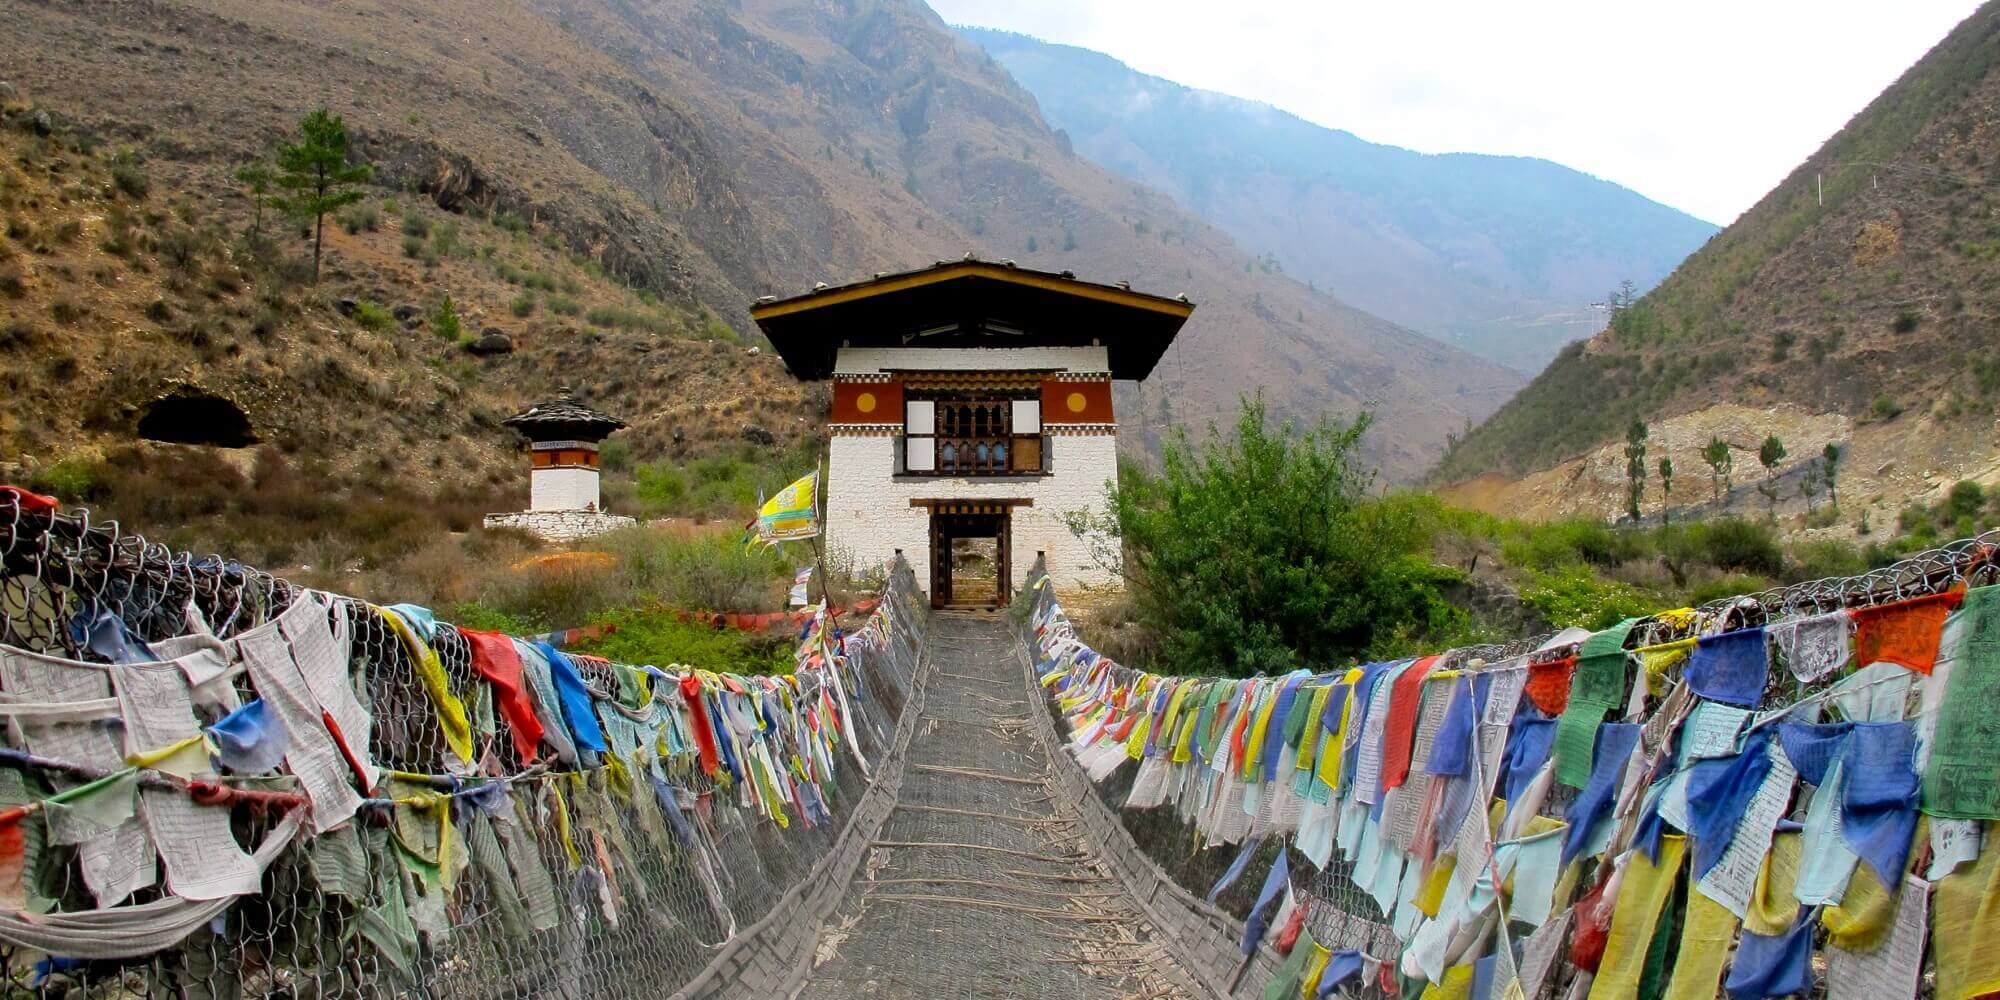 7 Days Discover Bhutan Tour: Price on request for 7 days